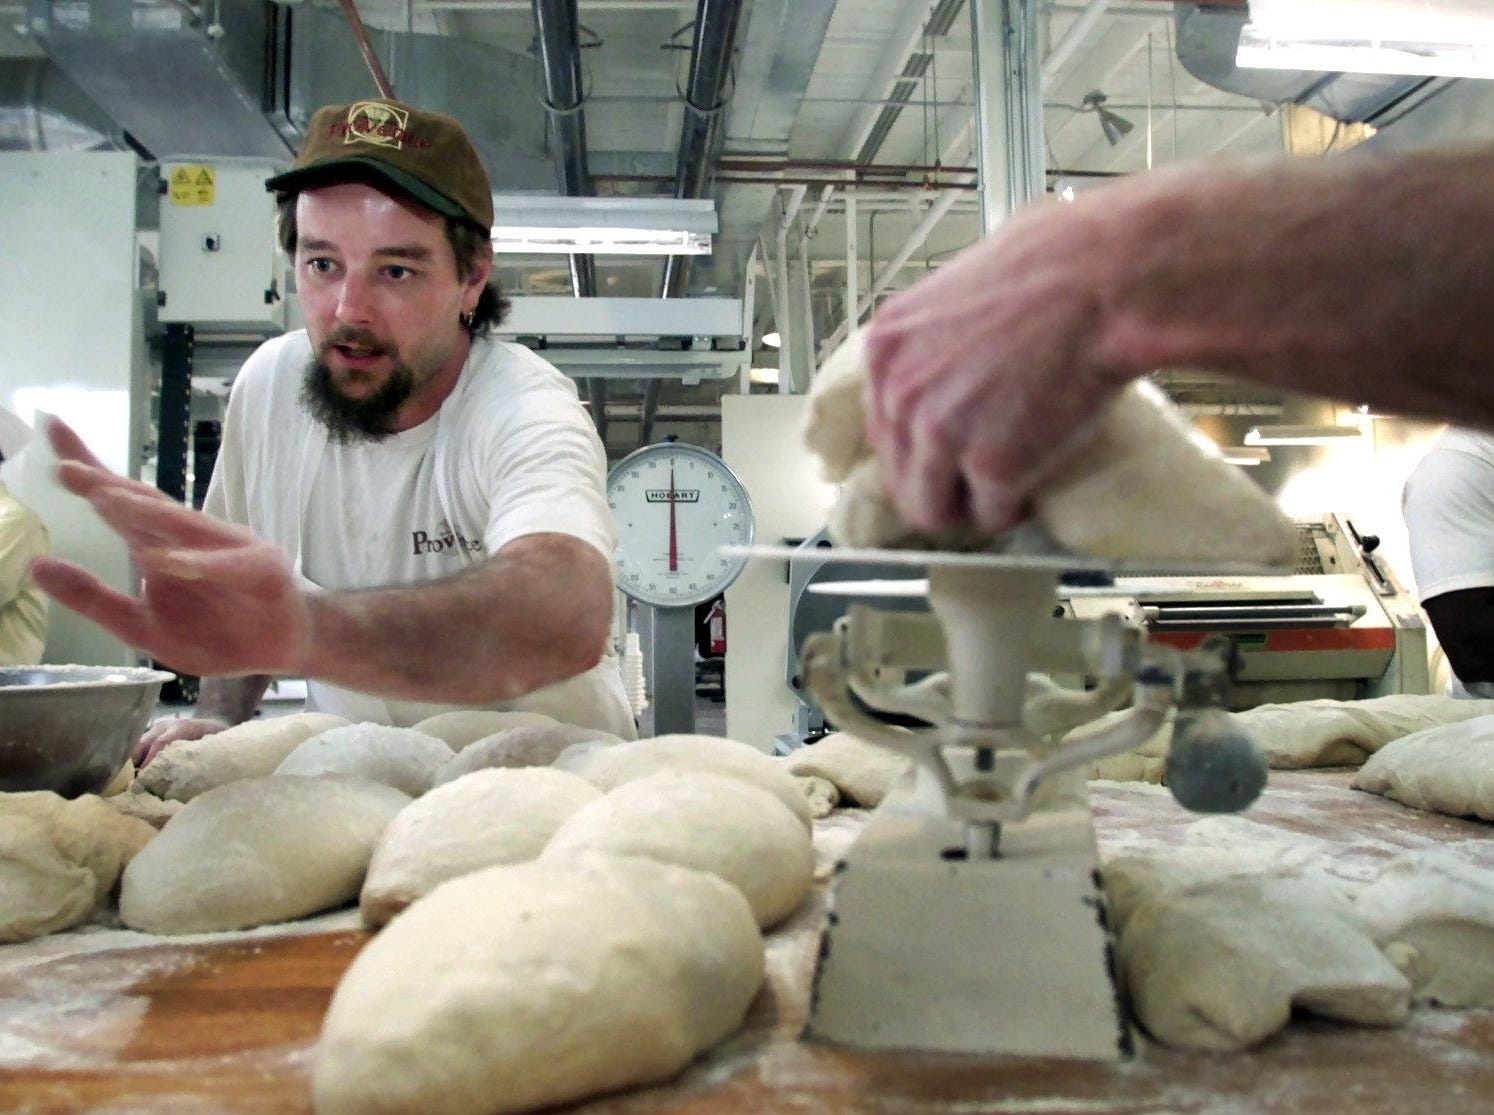 Dallas Mayberry counts loaves of Tuscan bread as the bread makers shape the dough at the new Provence wholesale site on 12th Avenue South Dec. 11, 2001.